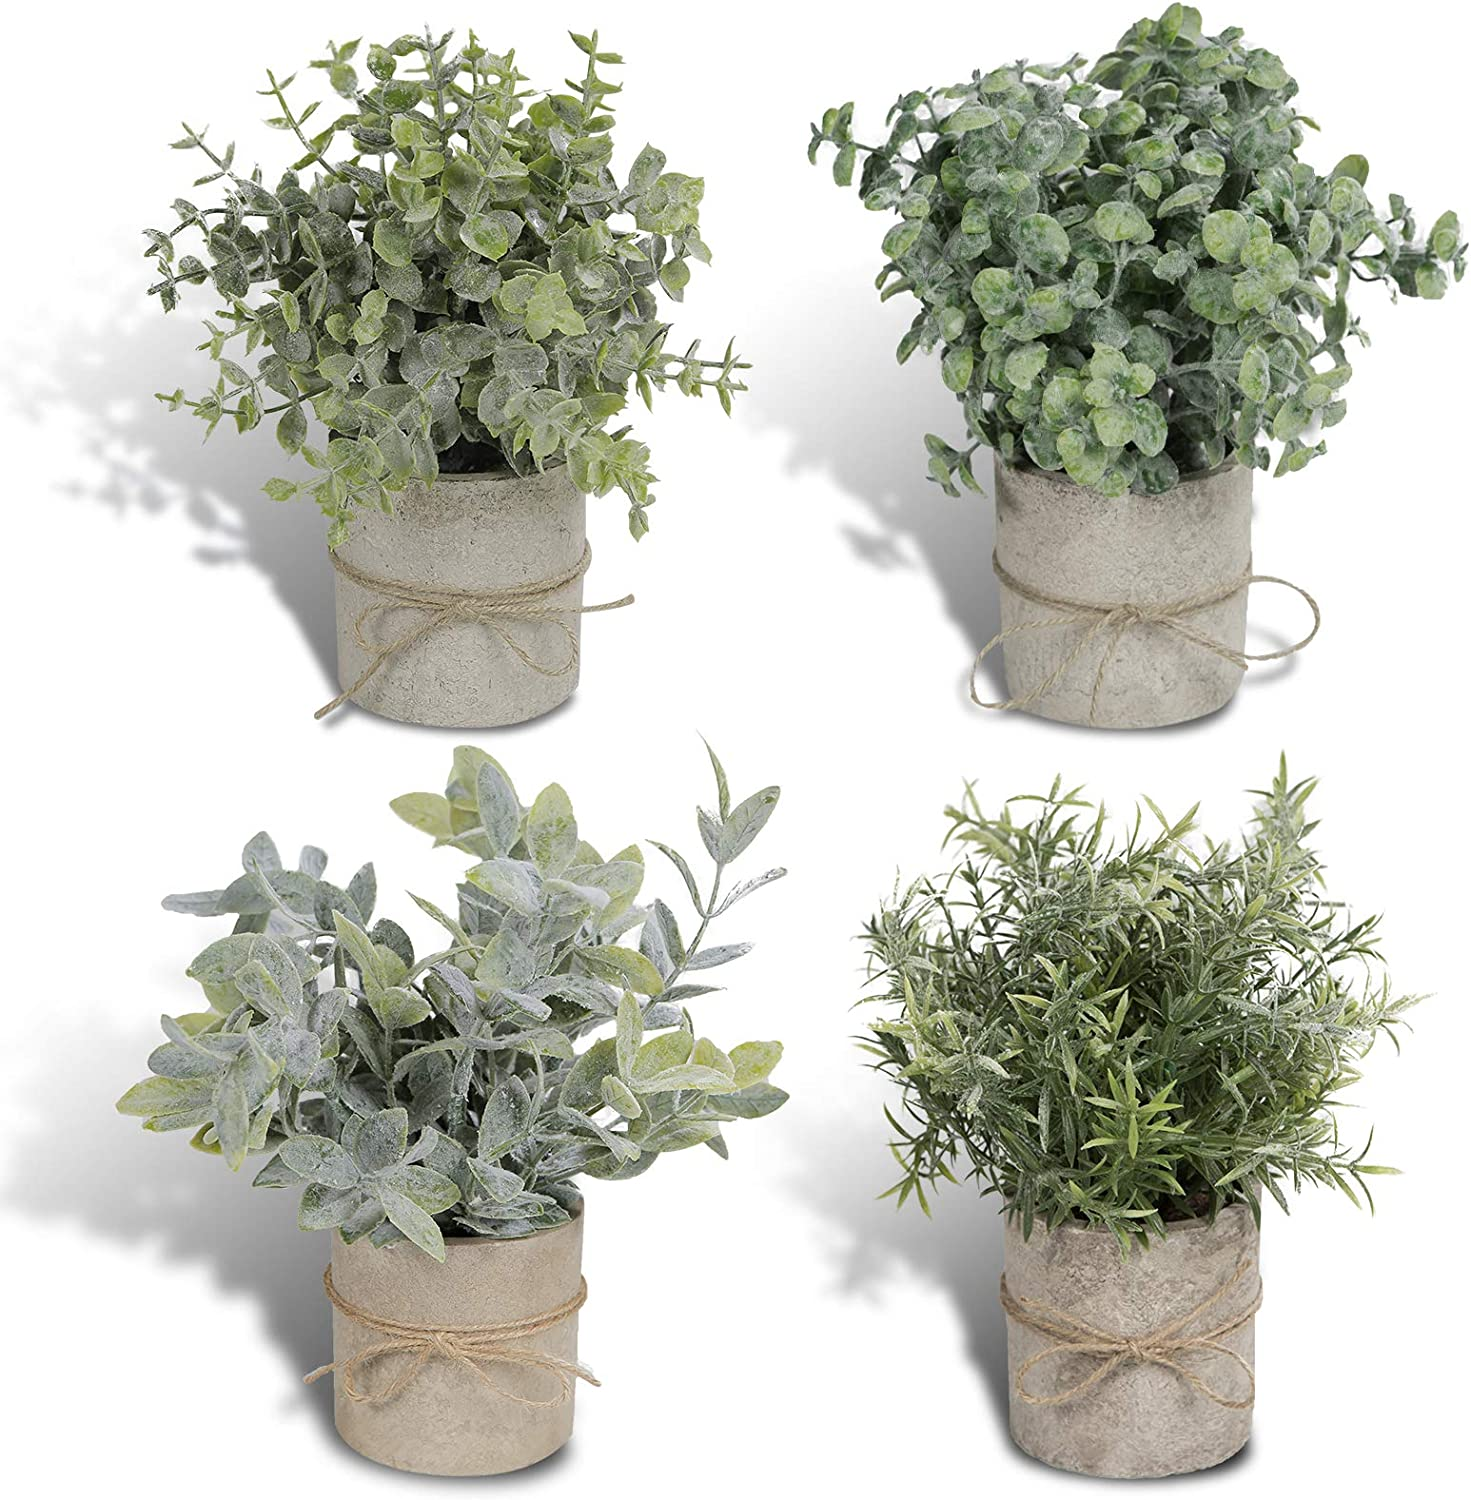 Joyhalo 4 Pack Artificial Potted Plants Faux Eucalyptus & Rosemary Greenery in Pots Small Houseplants for Indoor Tabletop Decor